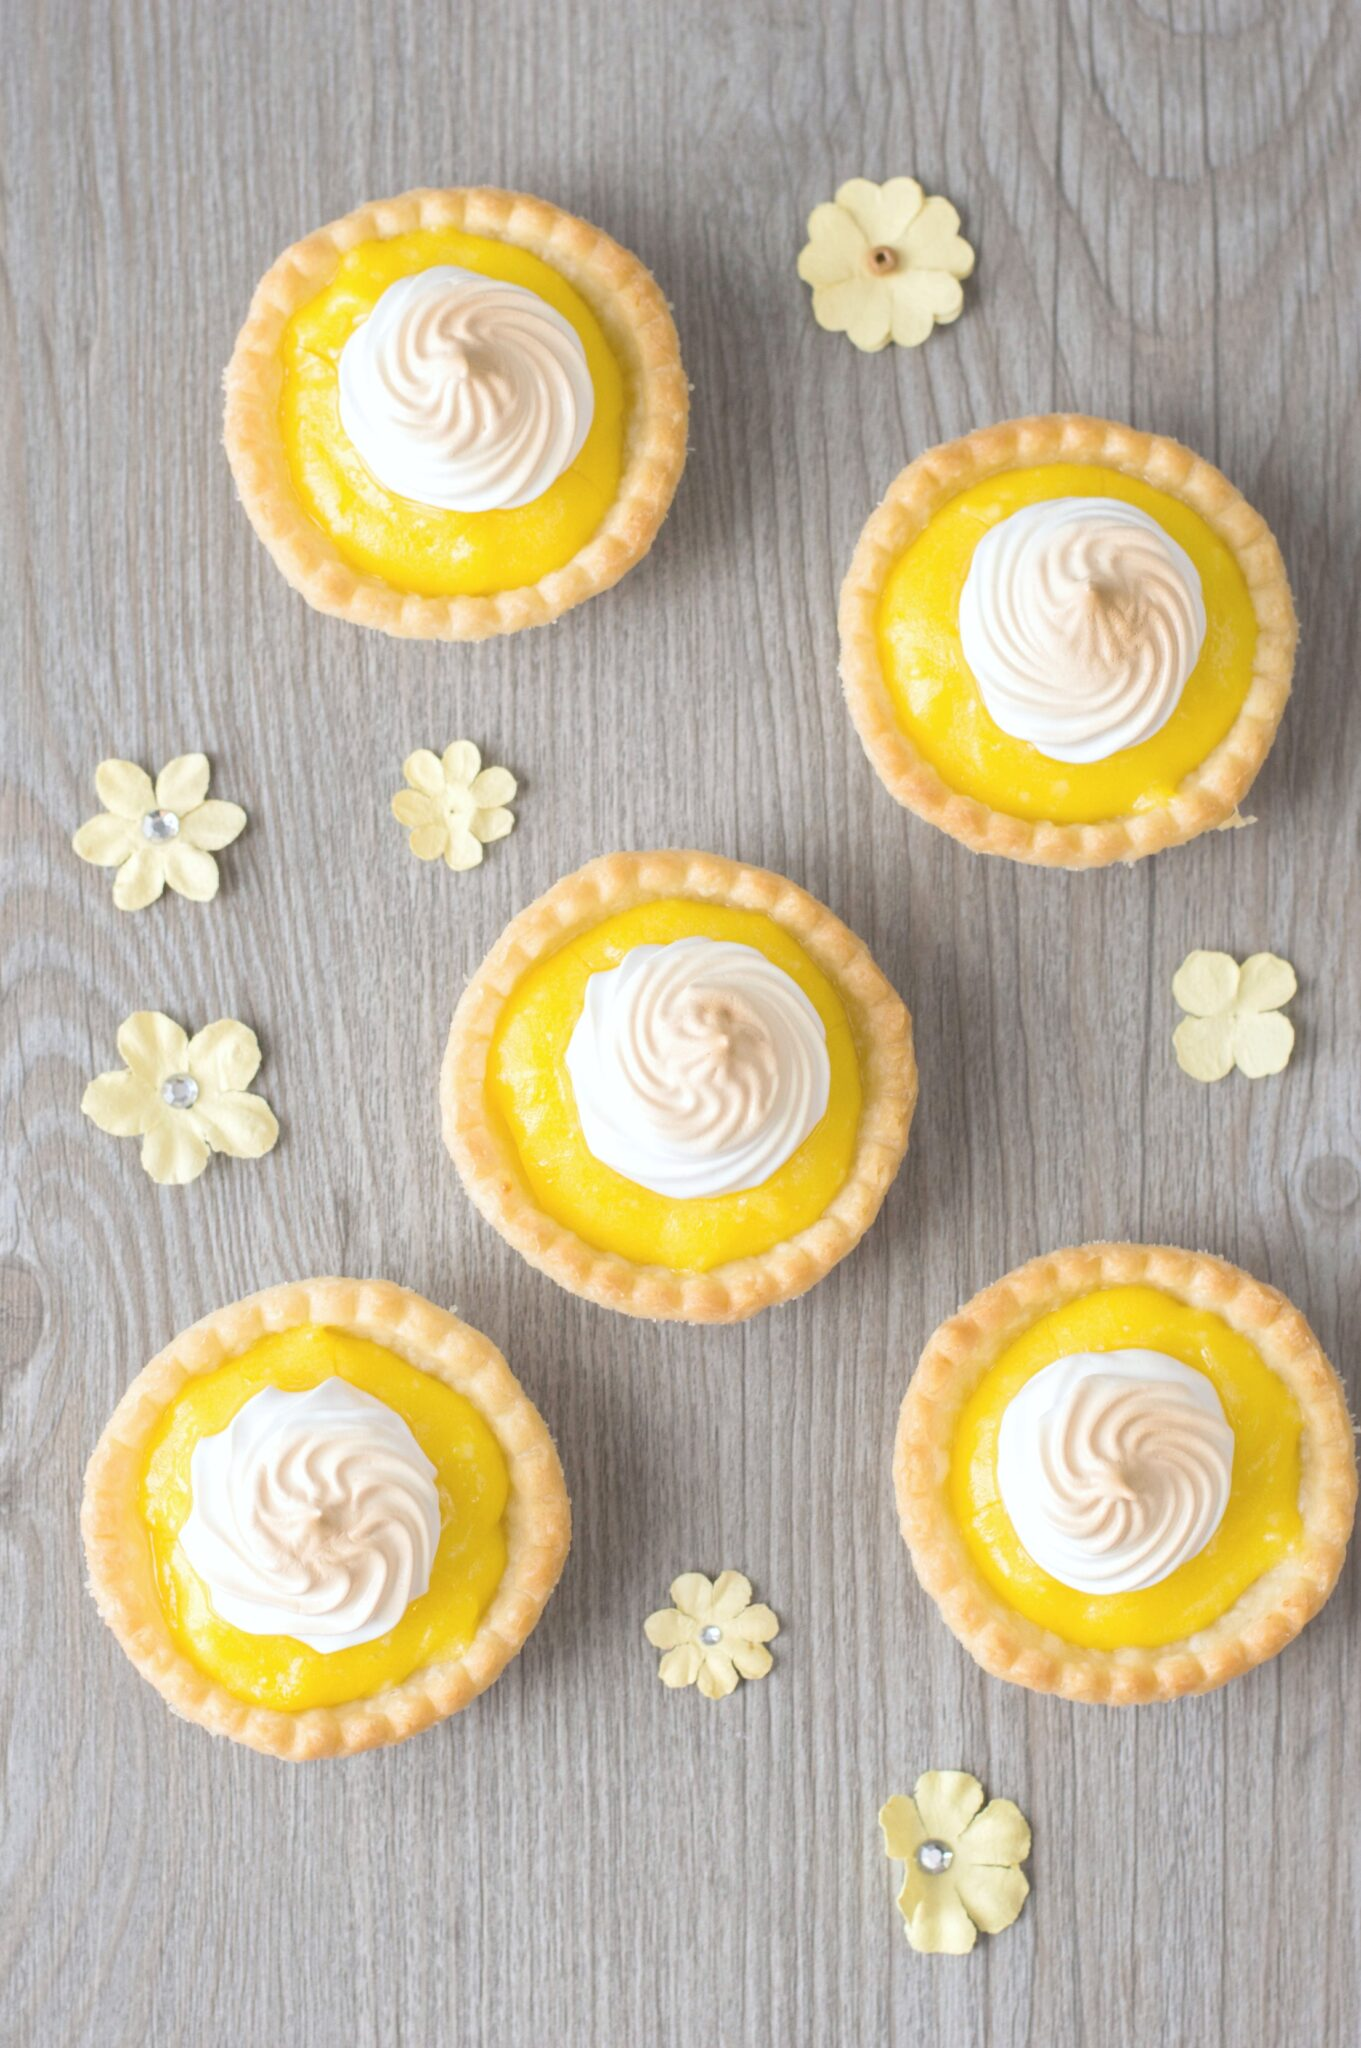 A flat lay view of Mini Lemon Meringue Tarts on a wooden board. Yellow flowers decorate the board.